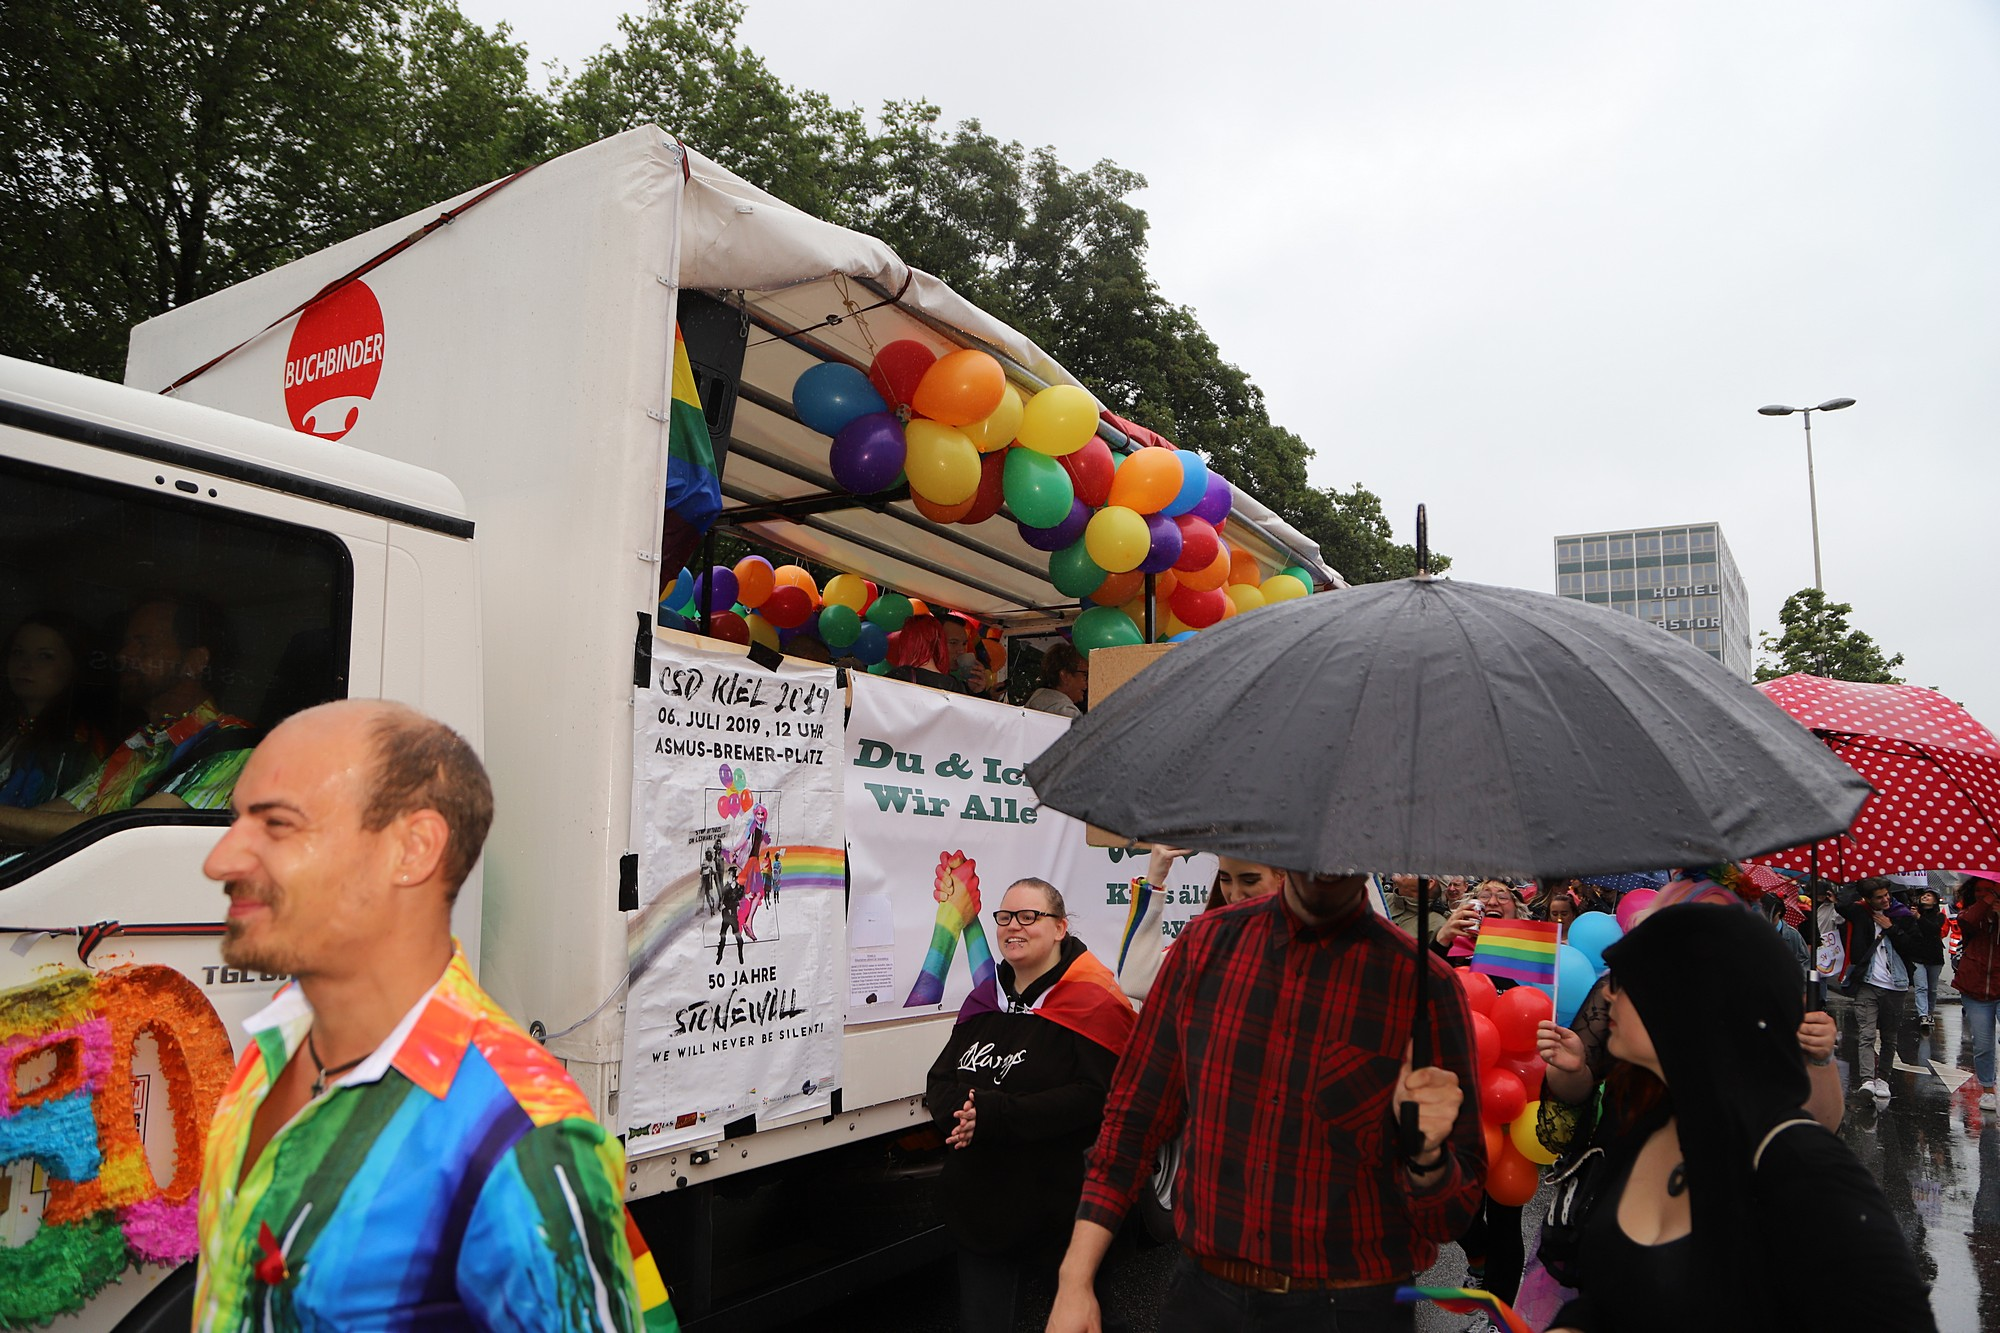 CSD Kiel - Demonstration & Straßenfest / 382x betrachtet